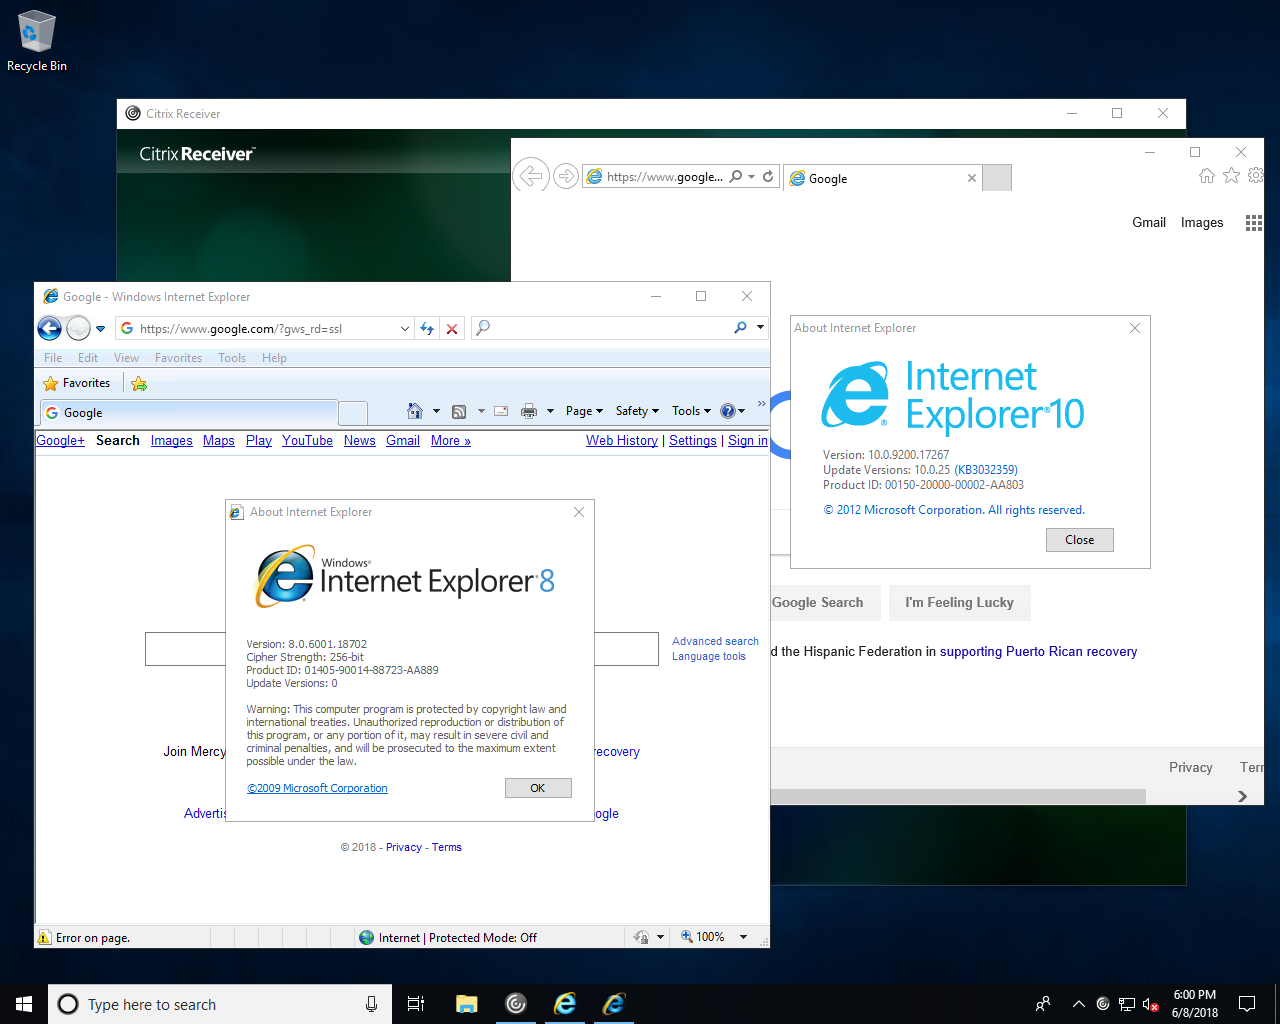 Citrix apps receiver ie side-by-side IE